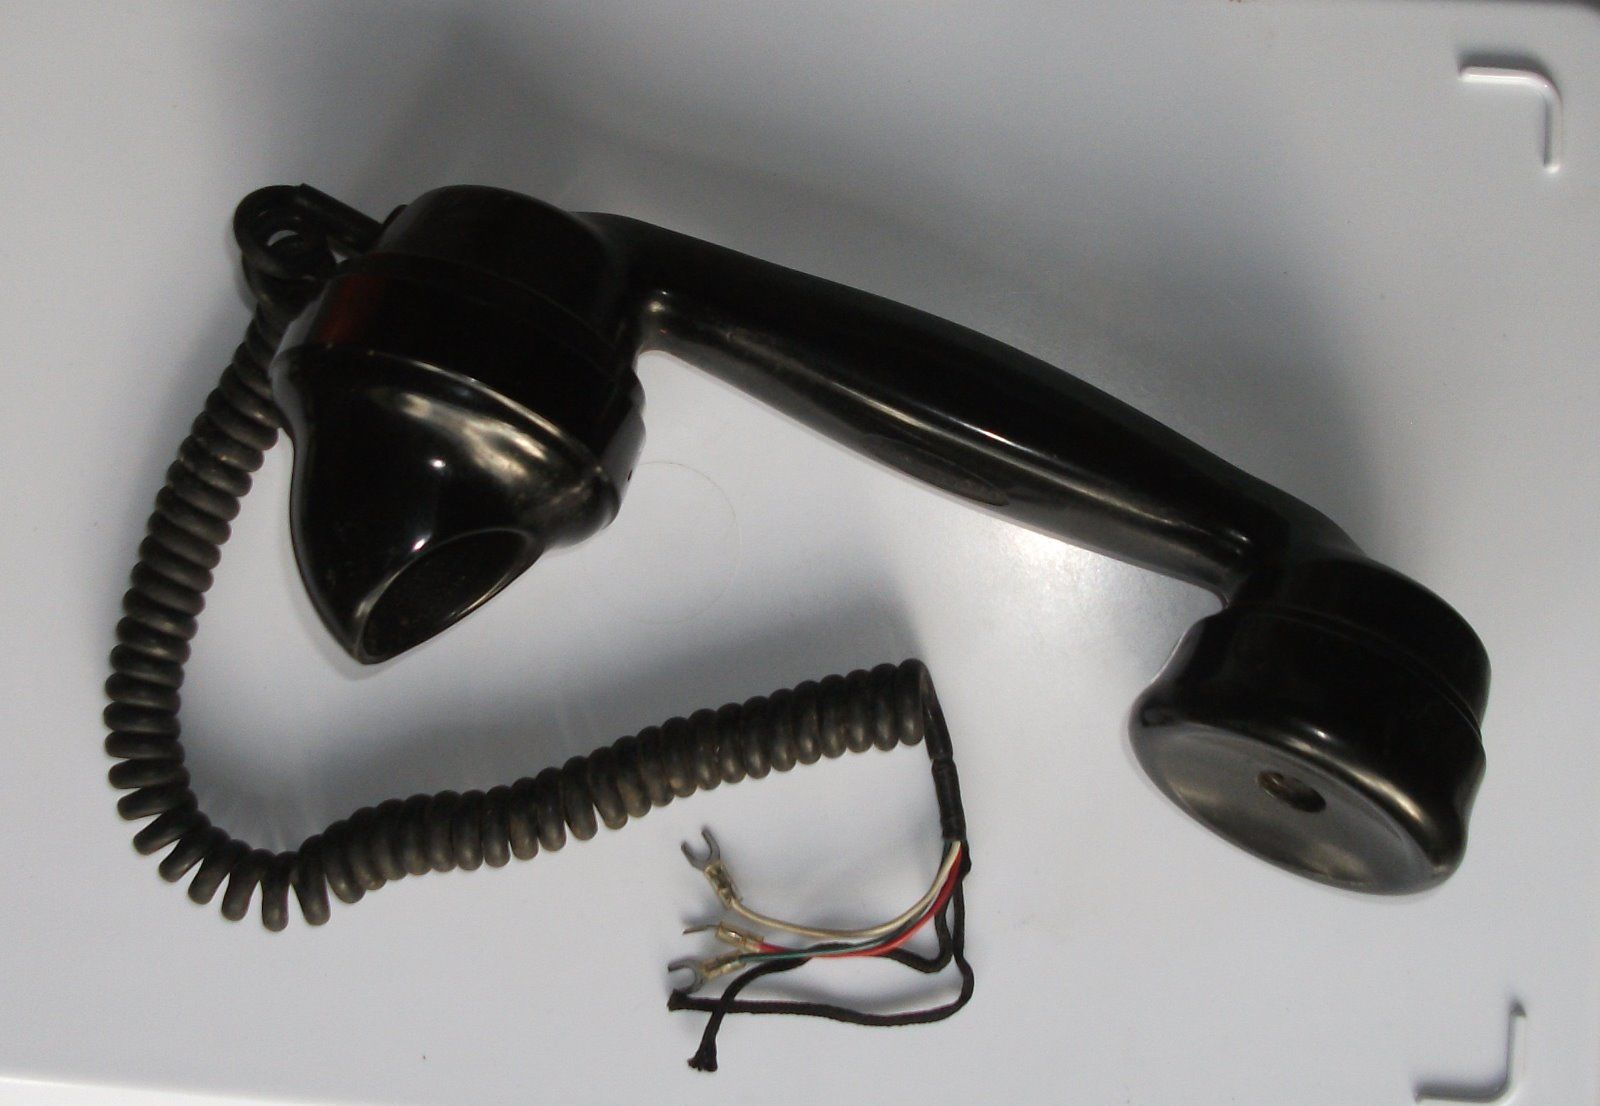 GPO 164 Handset with coiled cord.jpg